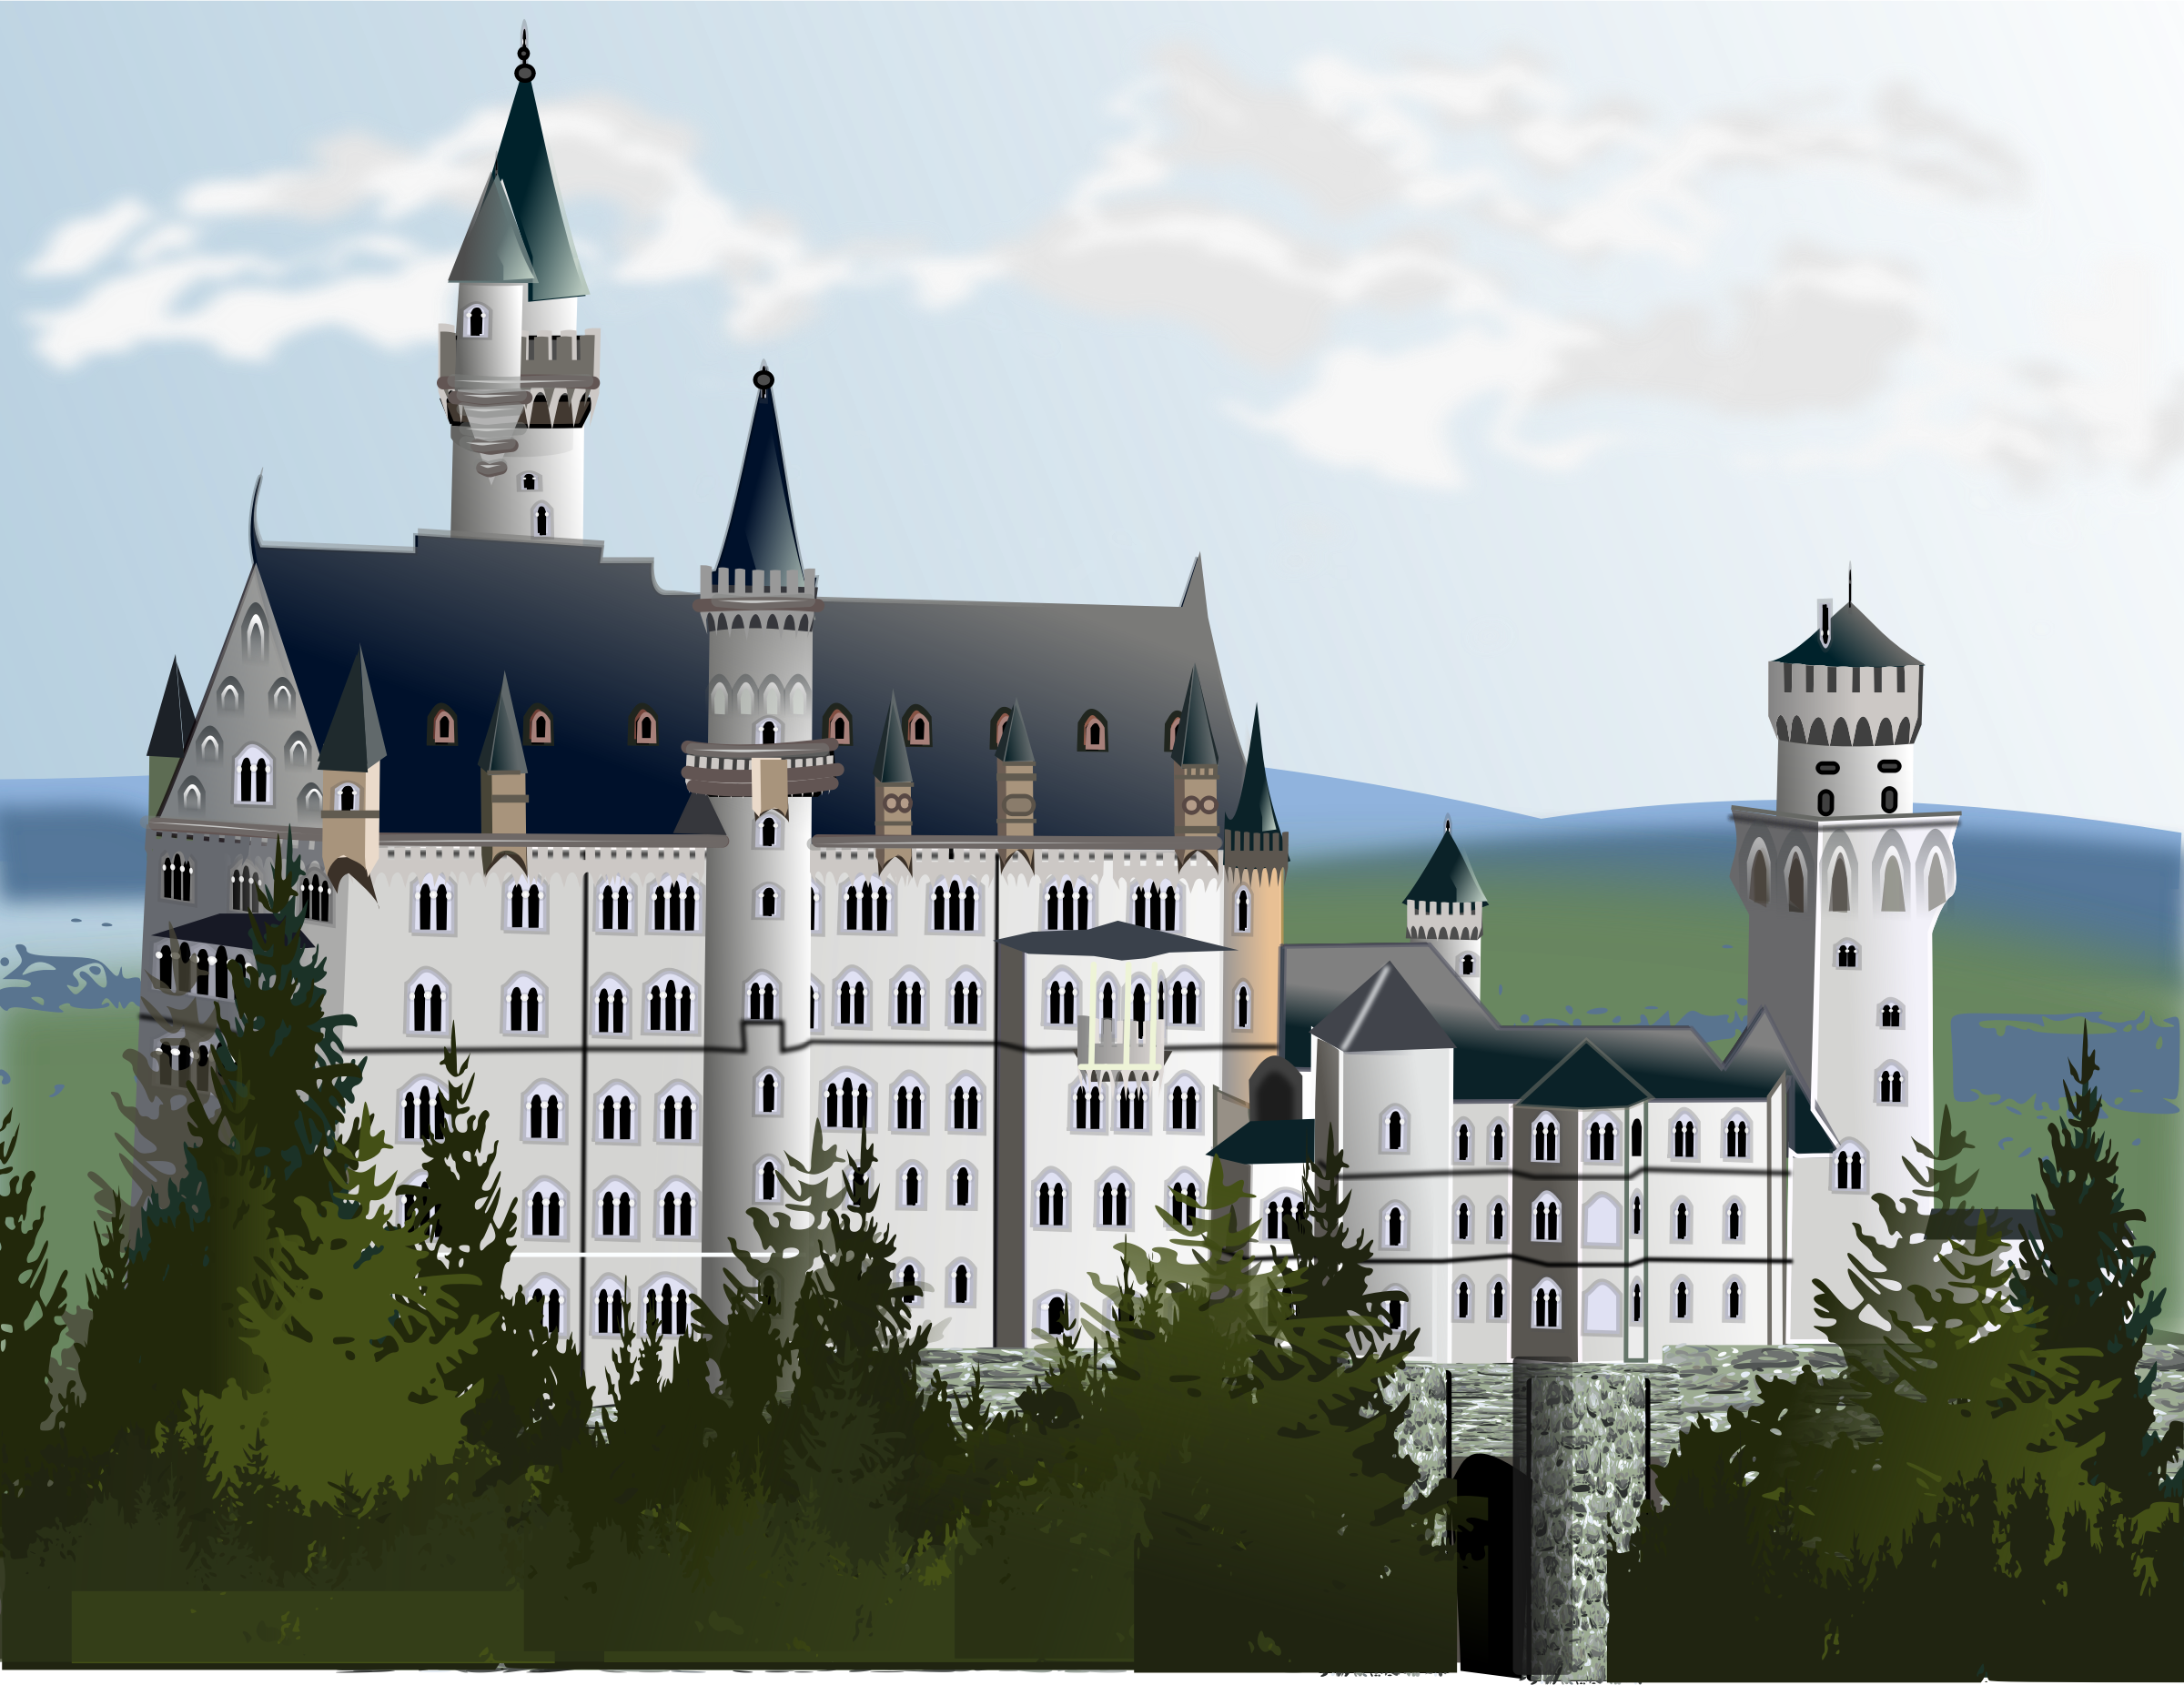 castle with most detail by gurica